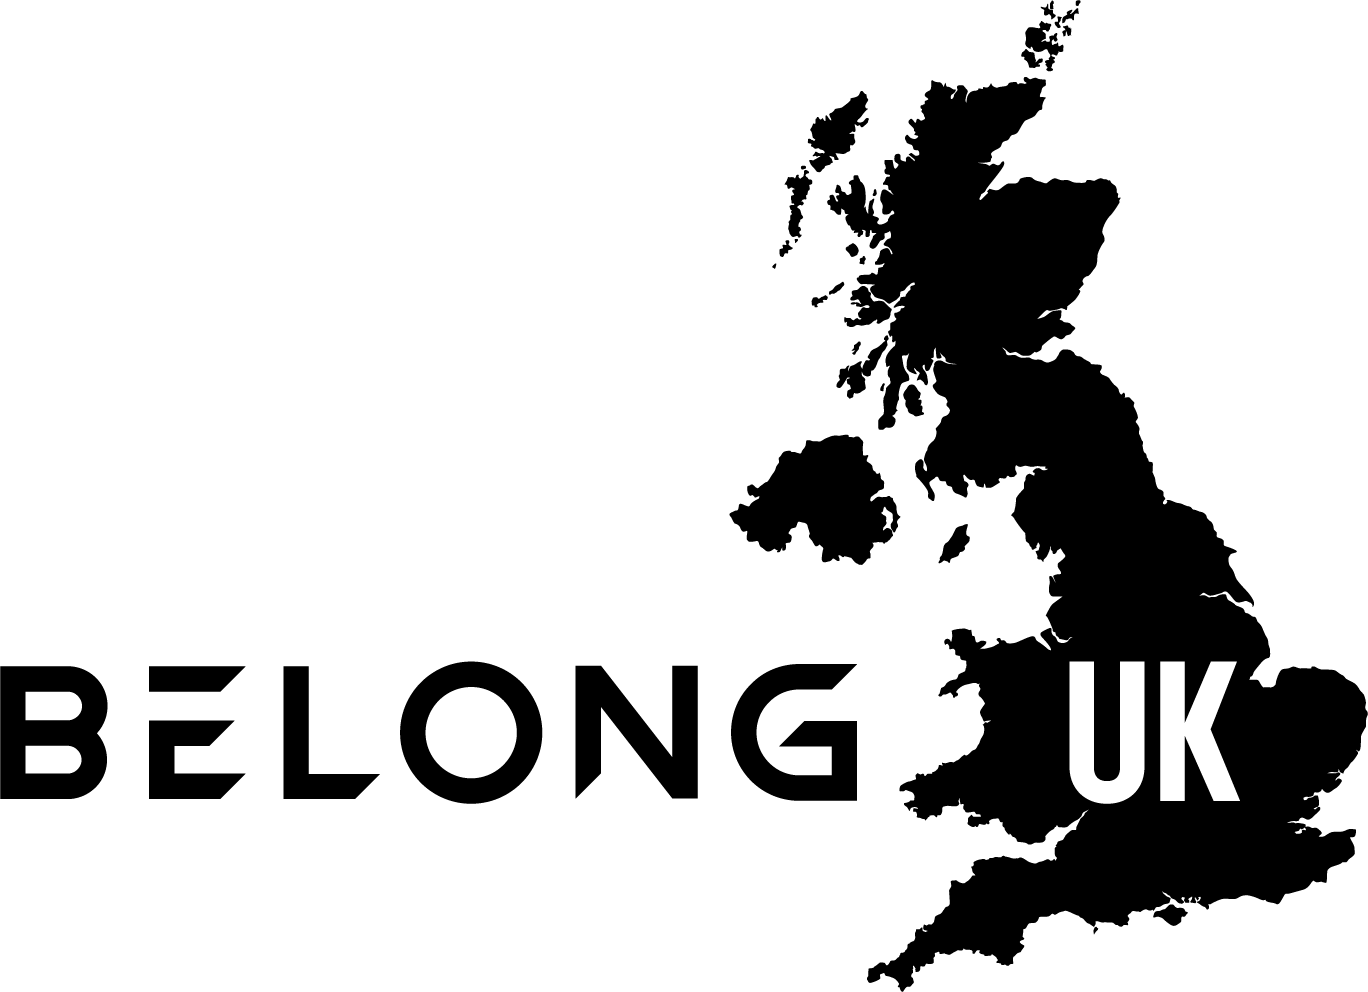 Belong UK